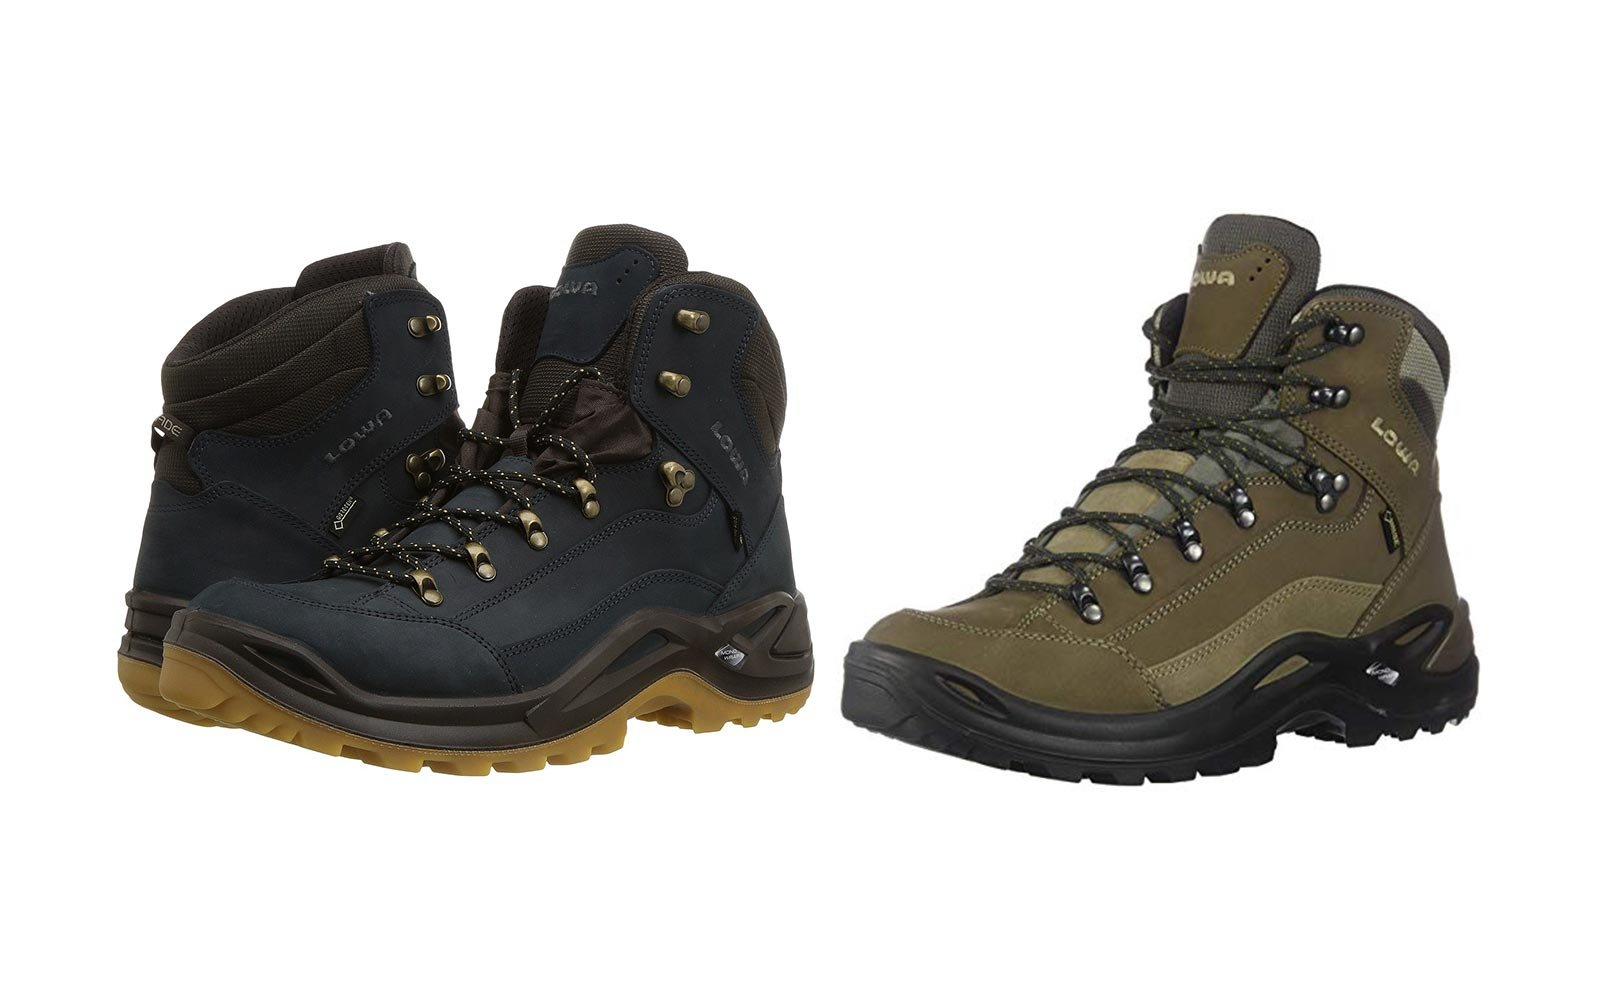 131f50ebcfa The Best Waterproof Hiking Boots for Men and Women | Travel + Leisure